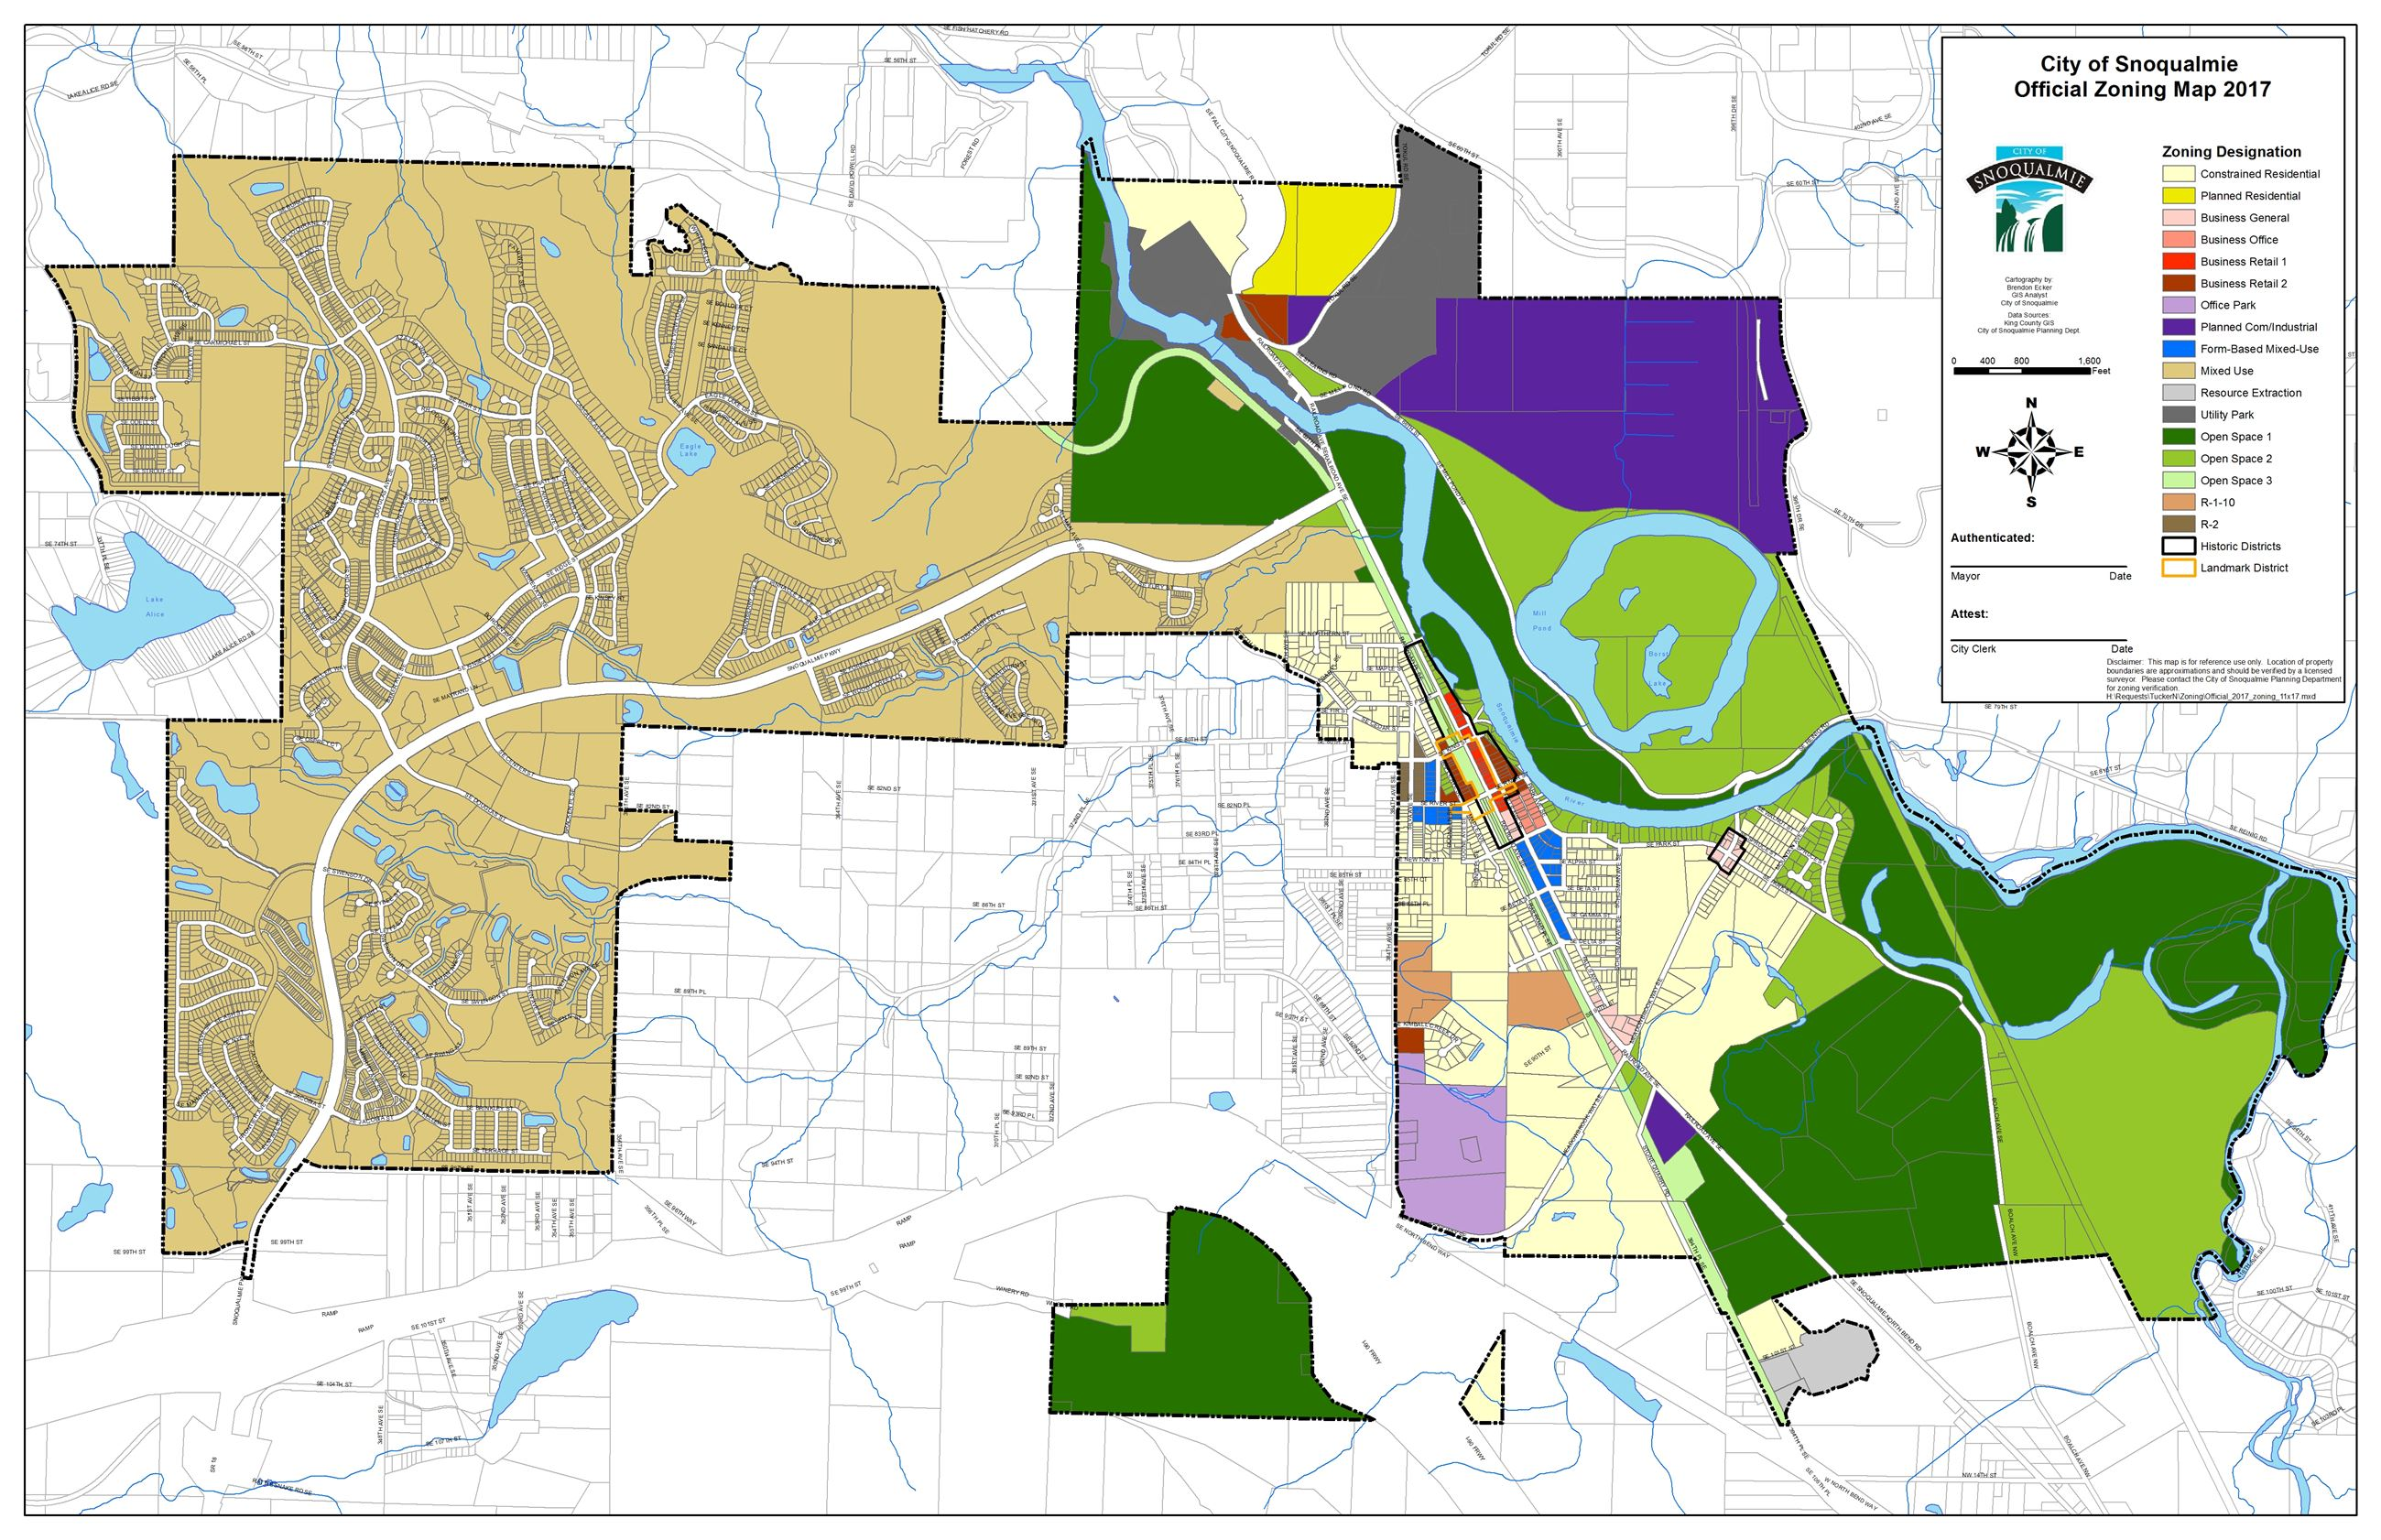 This is a zoning map for the City of Snoqualmie.